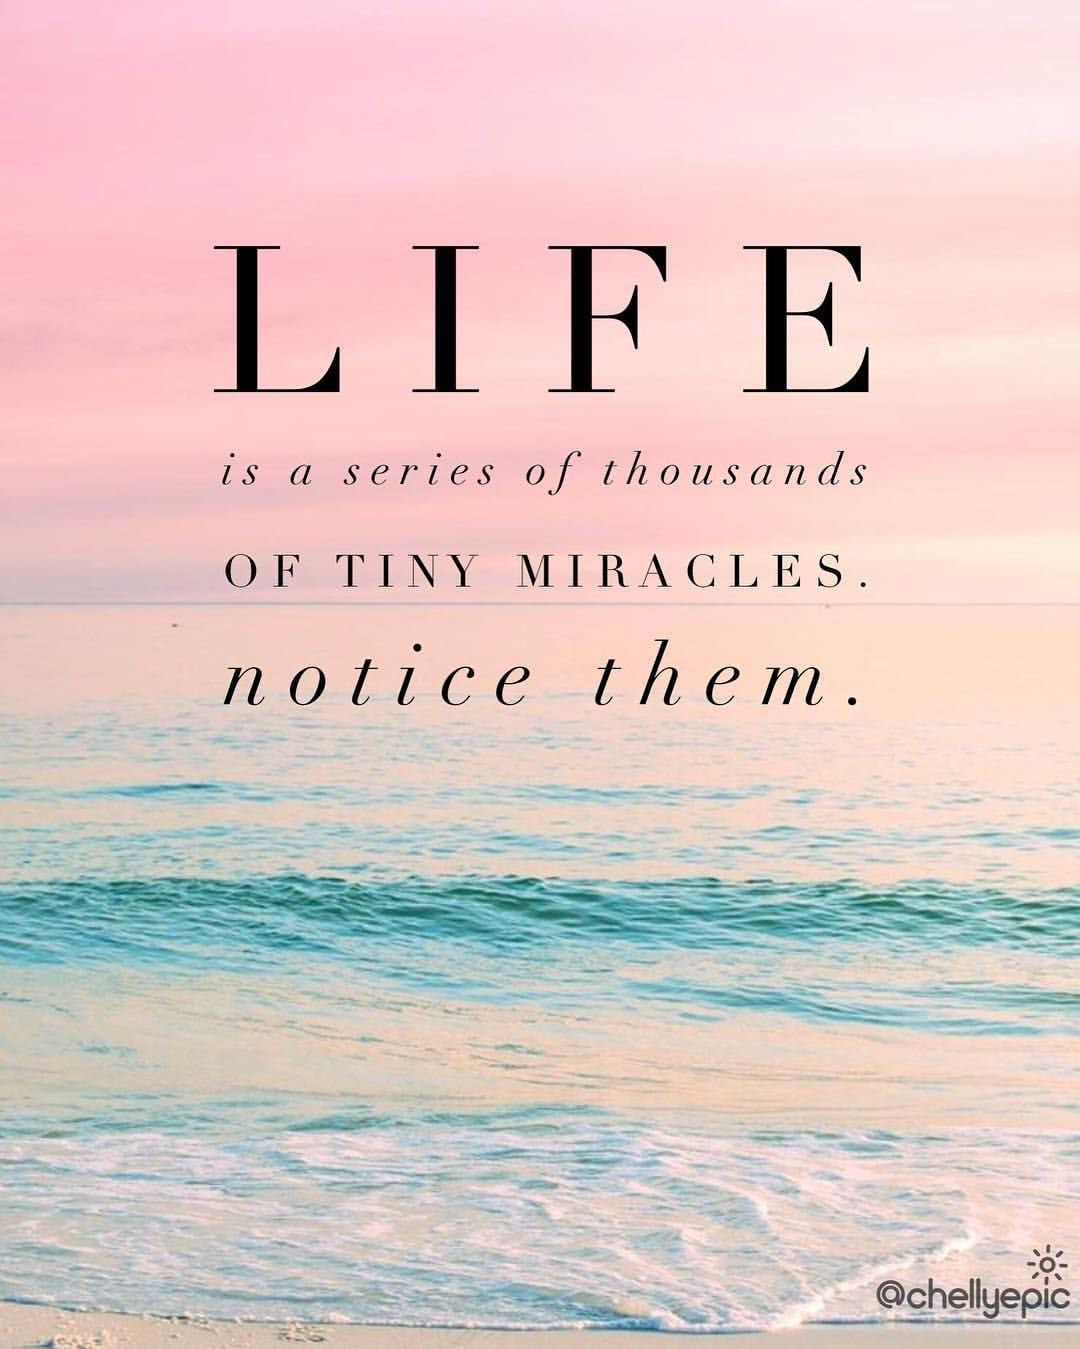 Life Is A Series Of Thousands Of Tiny Miracles. Notice